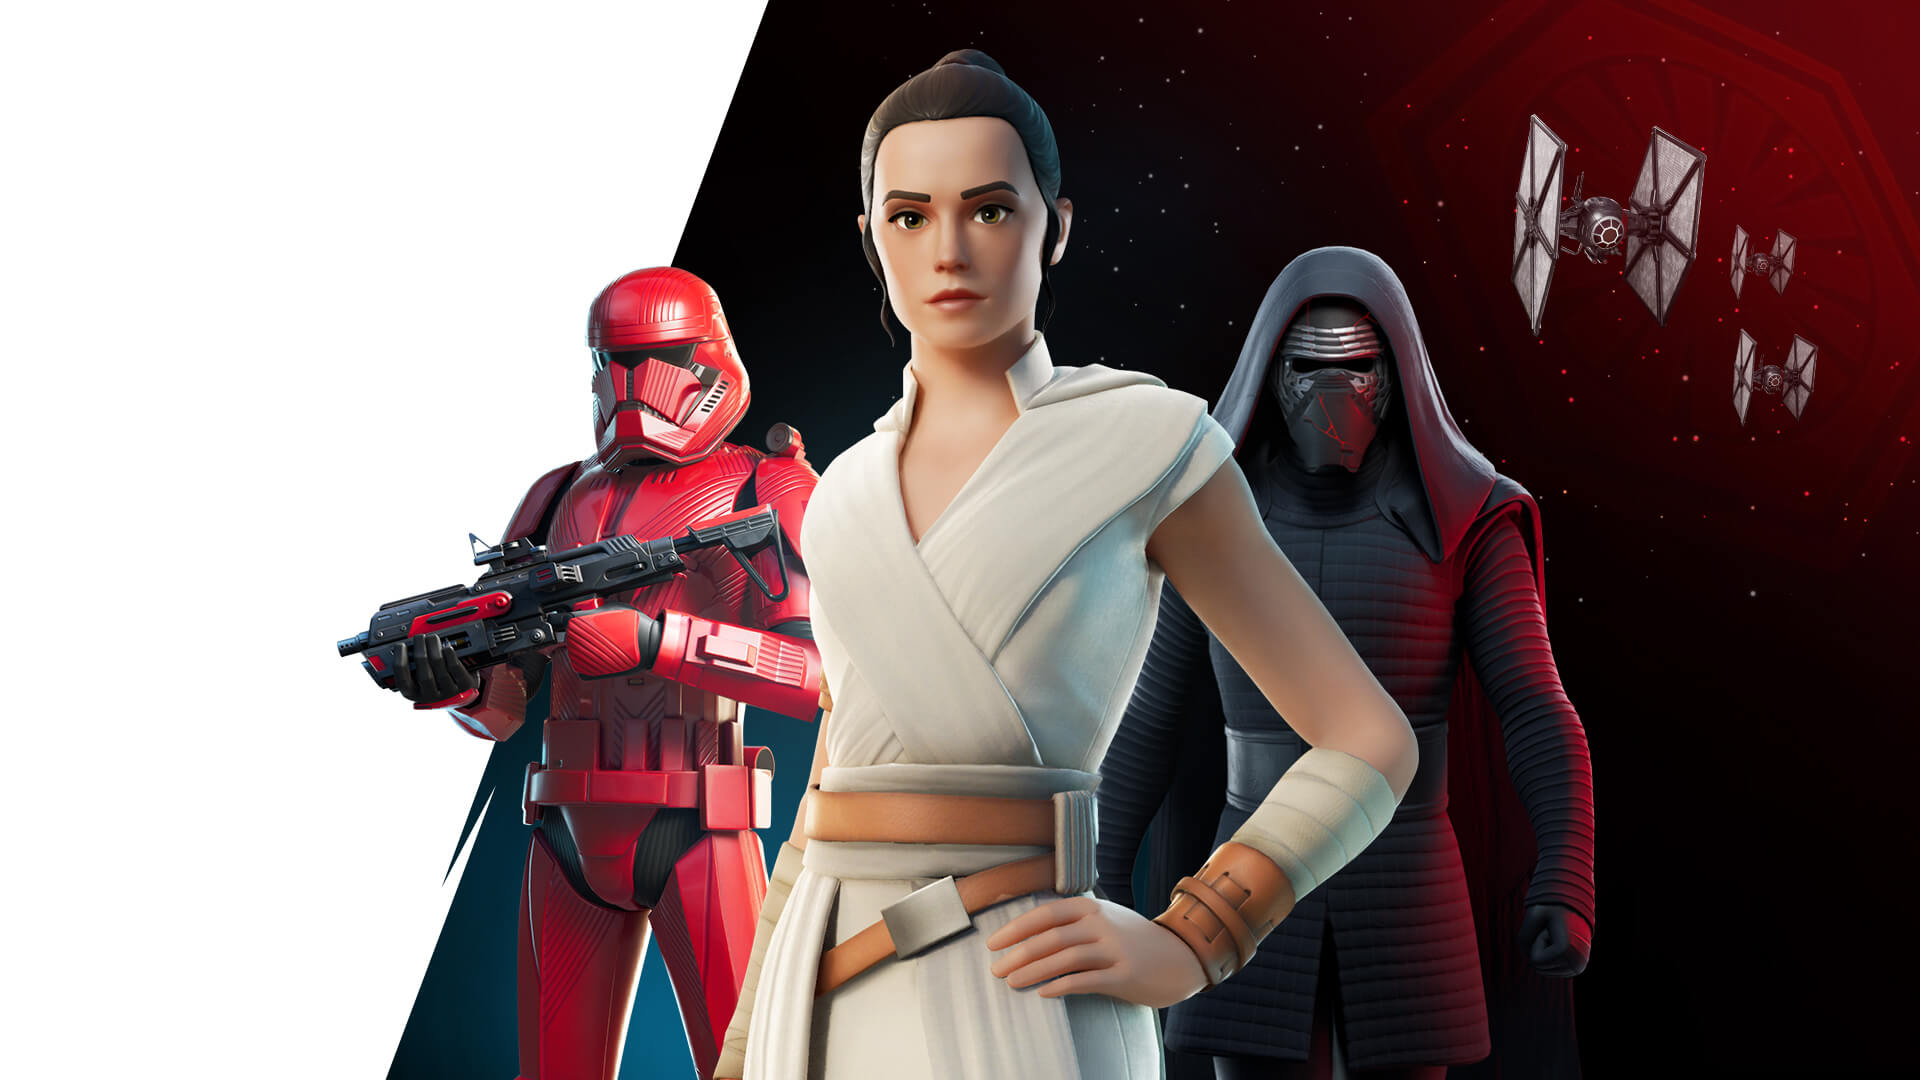 Fortnite Star Wars (May 4, 2021) – Skins, Possible Event, History